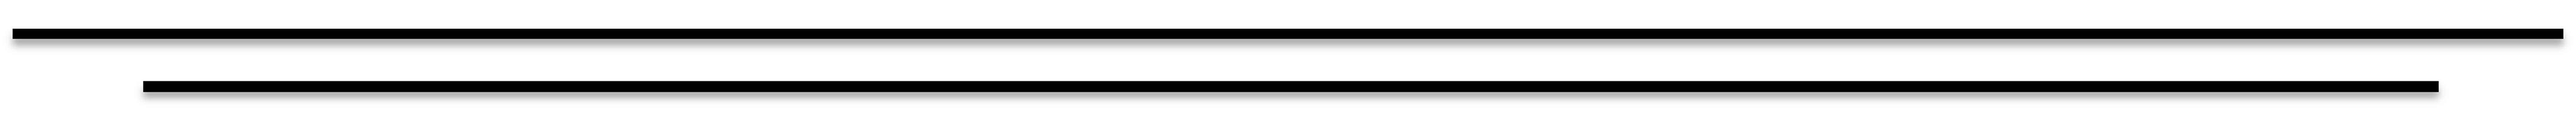 gray line png